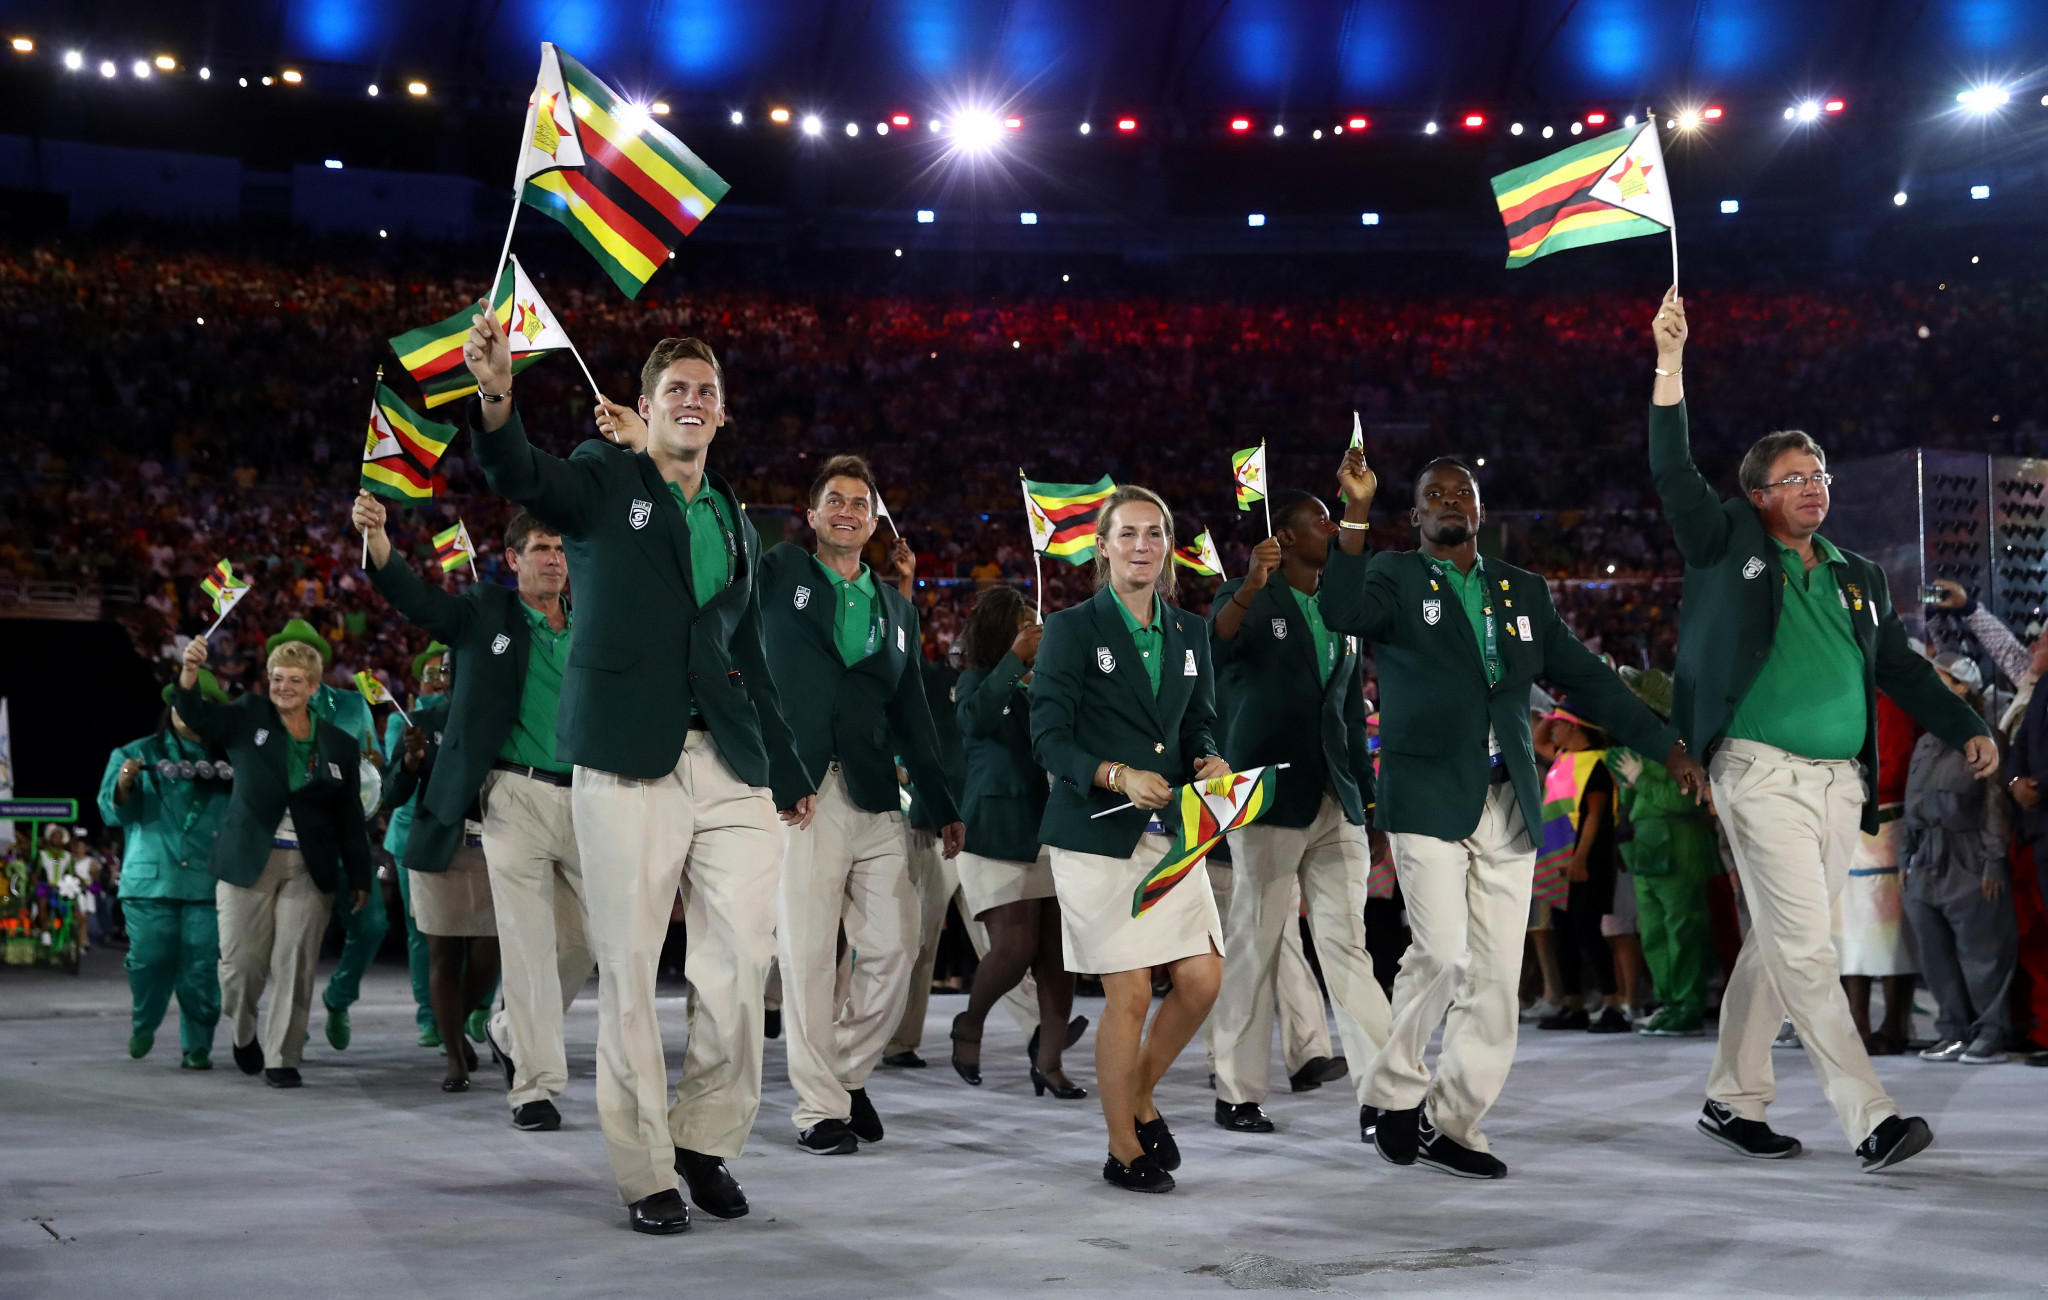 More than 2,000 athletes apply for Zimbabwean Government's COVID-19 relief fund